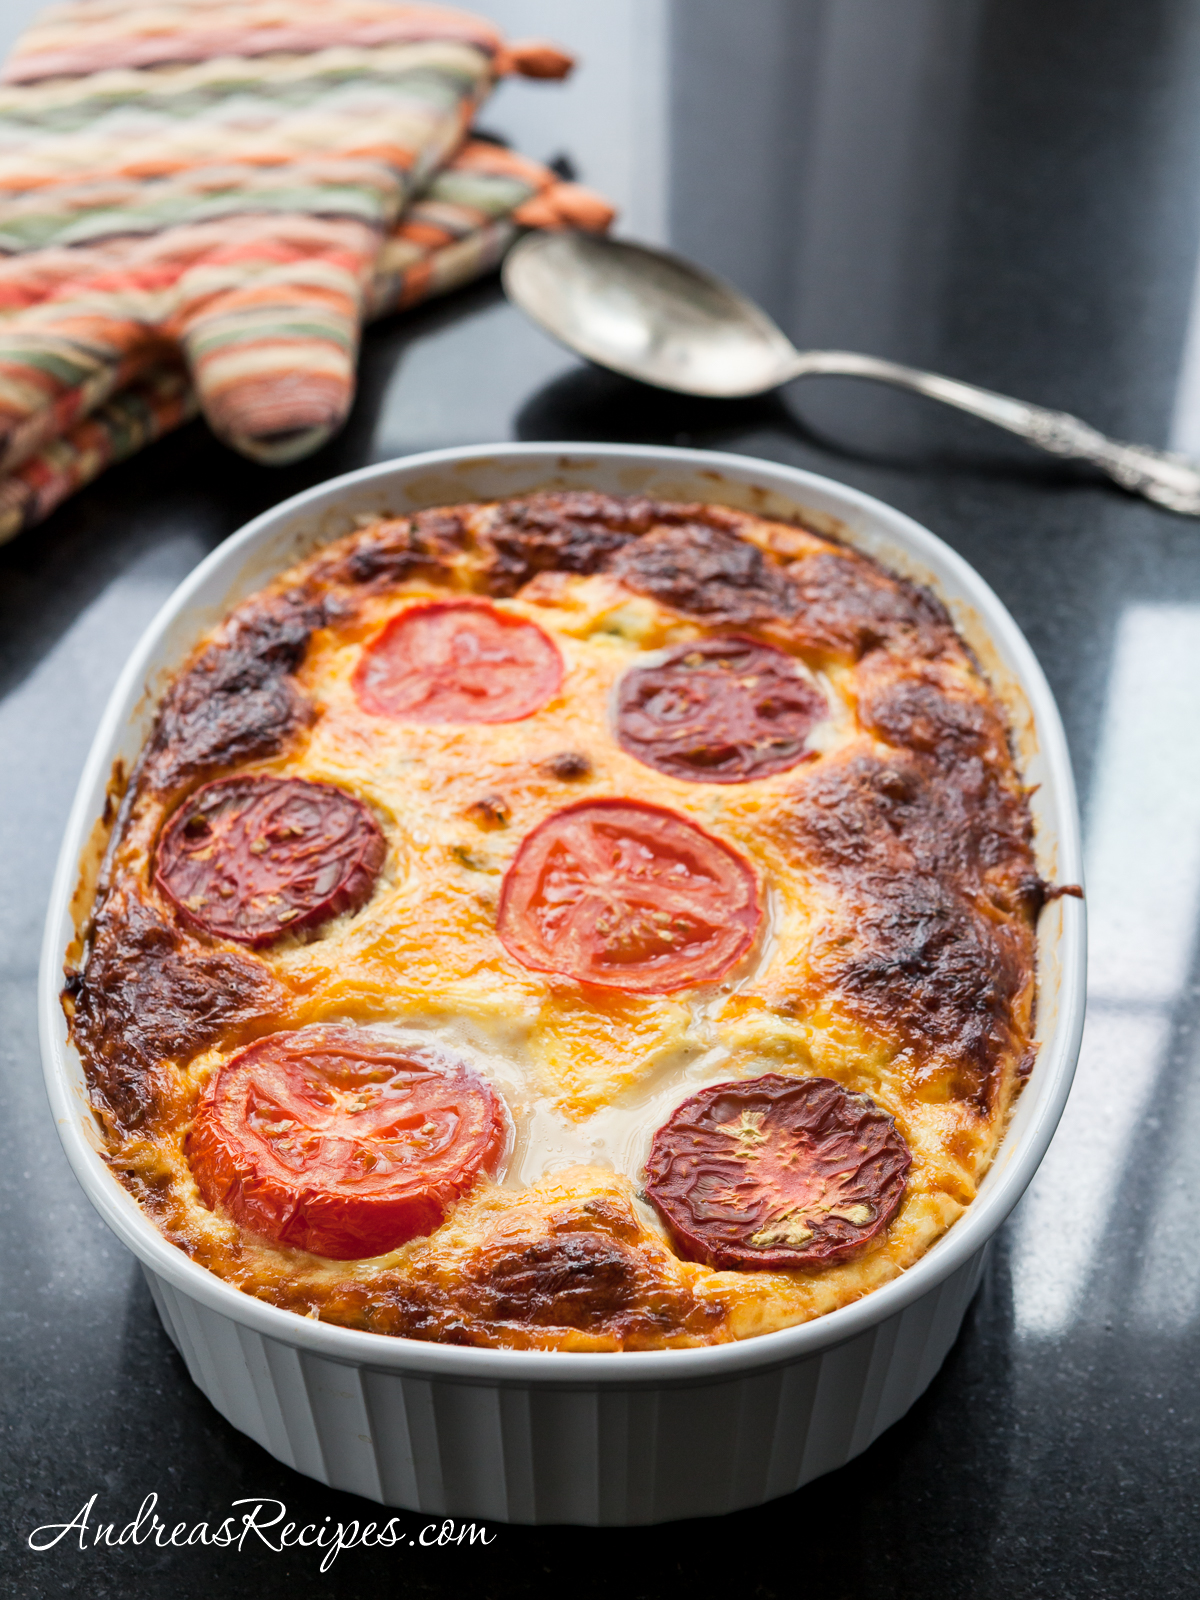 Egg and Cheese Casserole with Feta, Spinach, Mushrooms, Peppers, and Tomatoes - Andrea Meyers